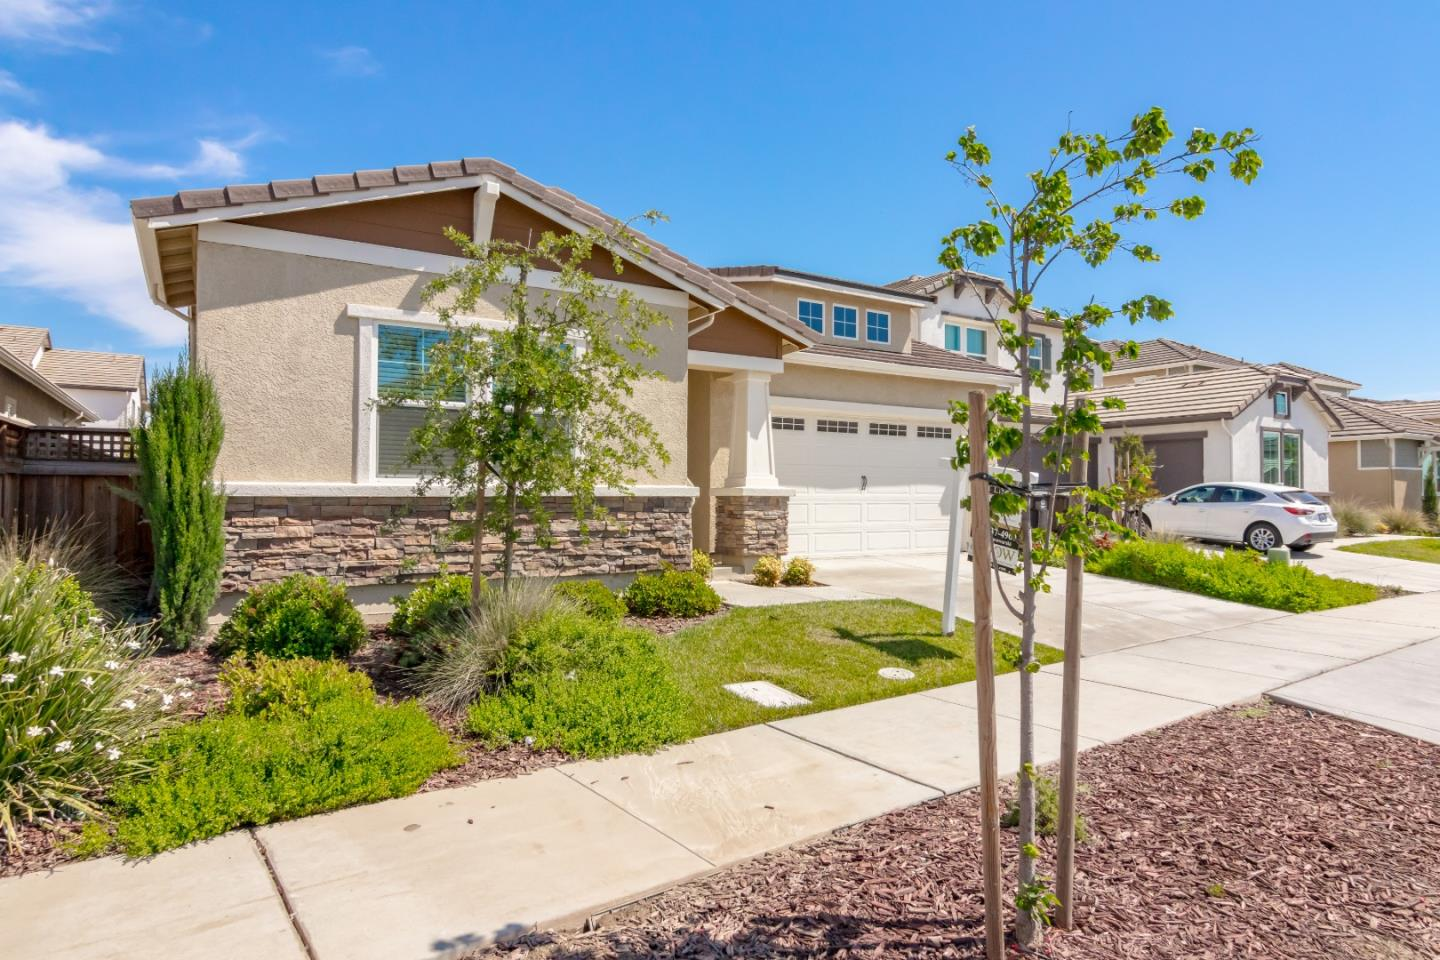 Detail Gallery Image 1 of 1 For 1895 Balsam Ct, Lathrop, CA 95330 - 3 Beds | 2/1 Baths